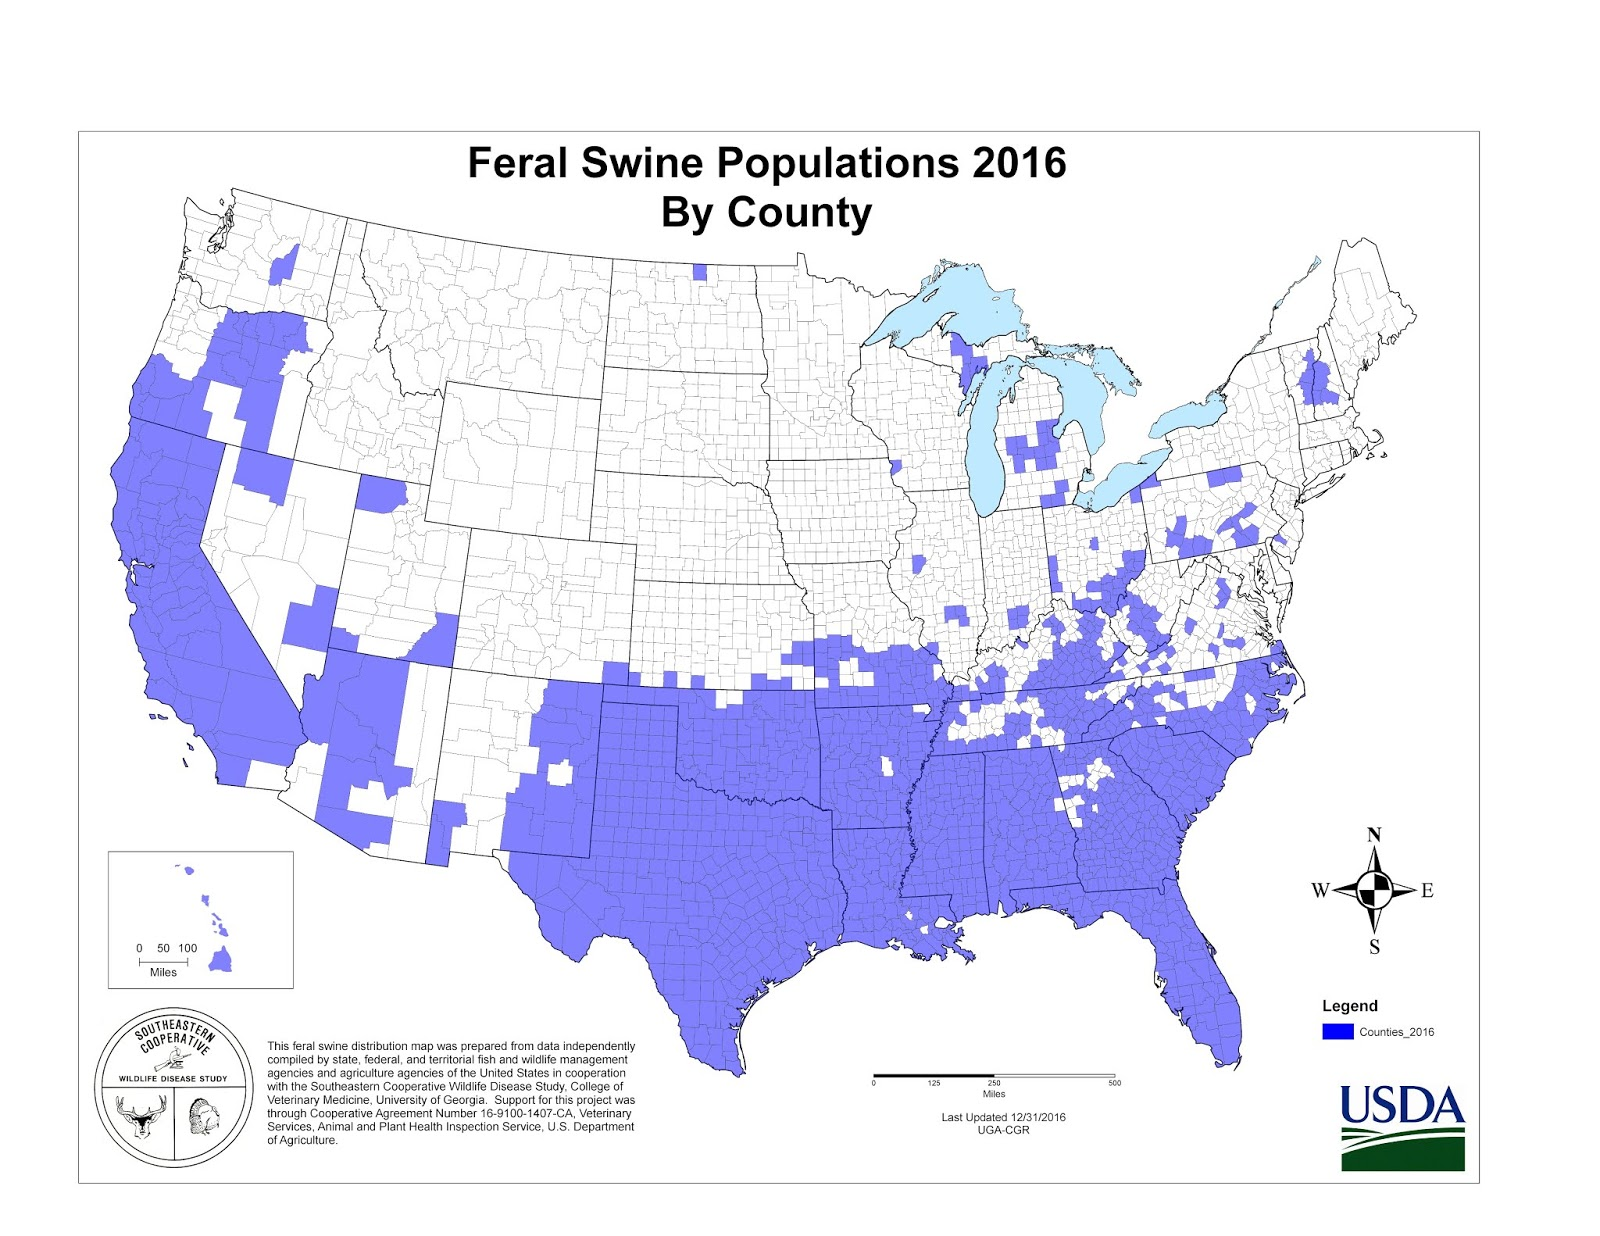 nmfss data showing 2016 feral swine populations by county image credit usda aphis